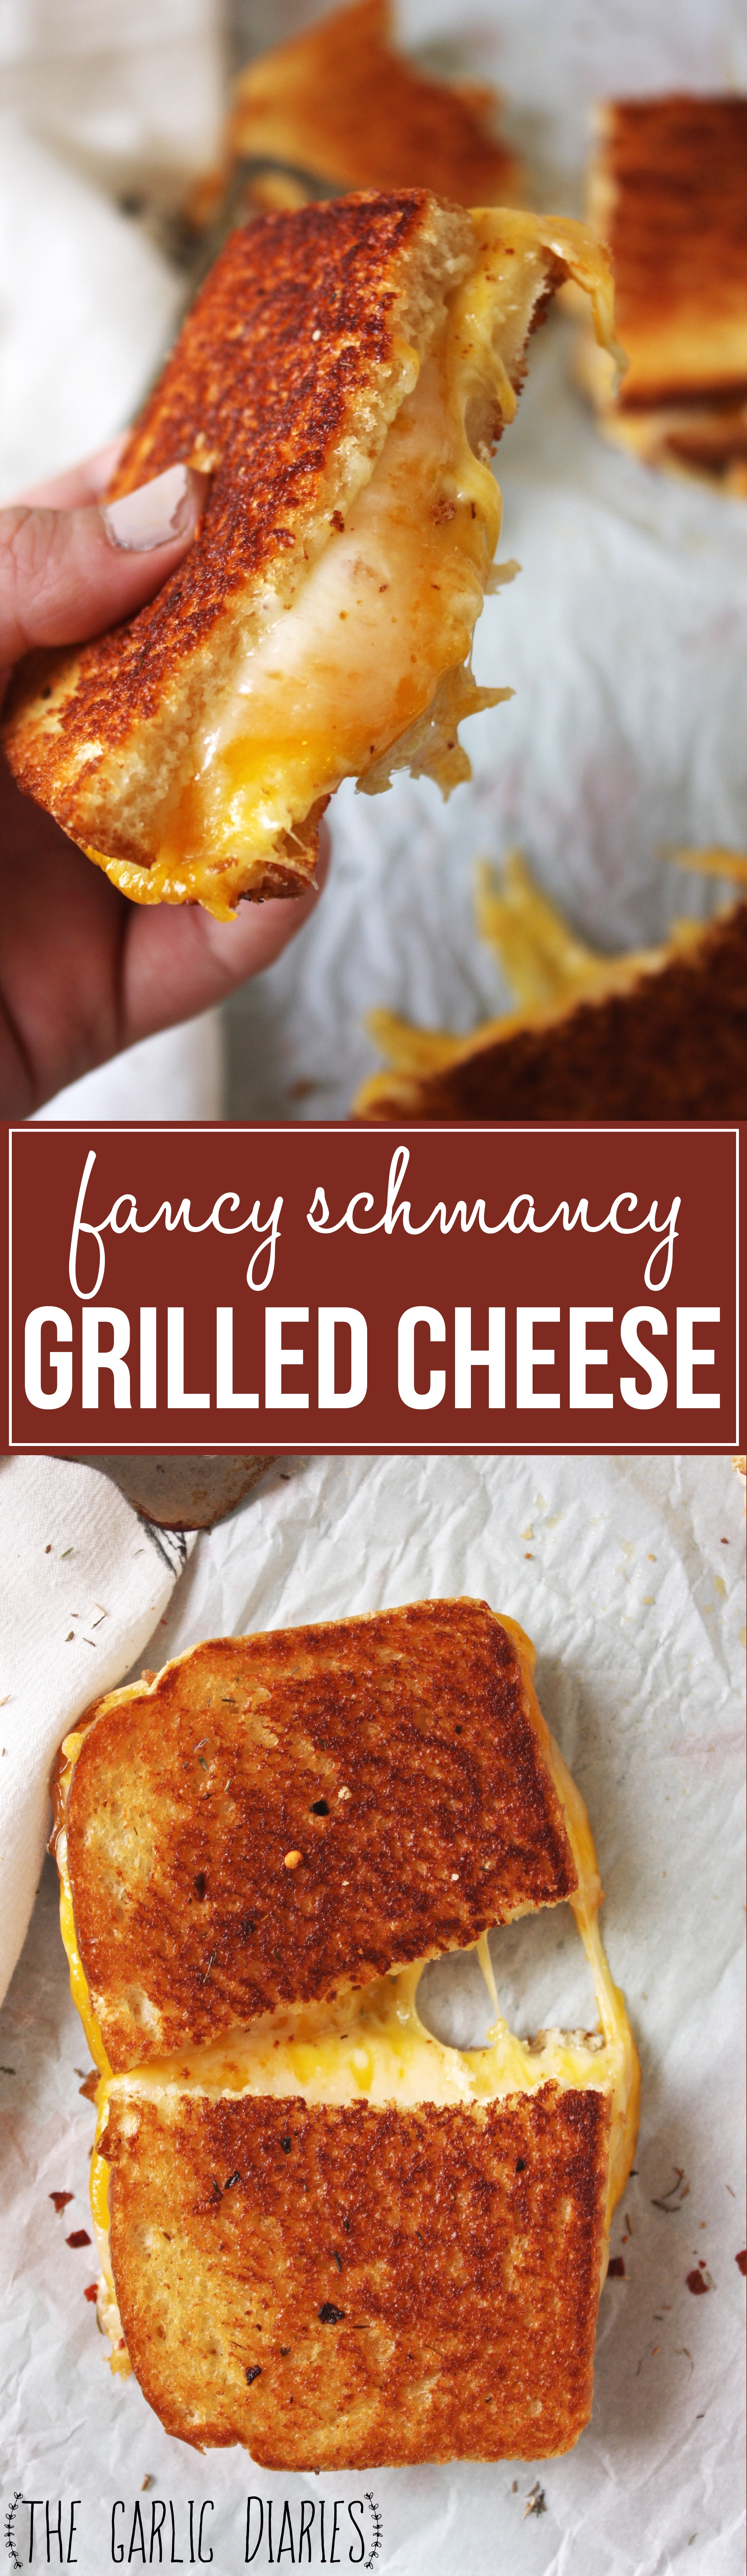 Grilled Cheese - This is seriously the best grilled cheese sandwich ...